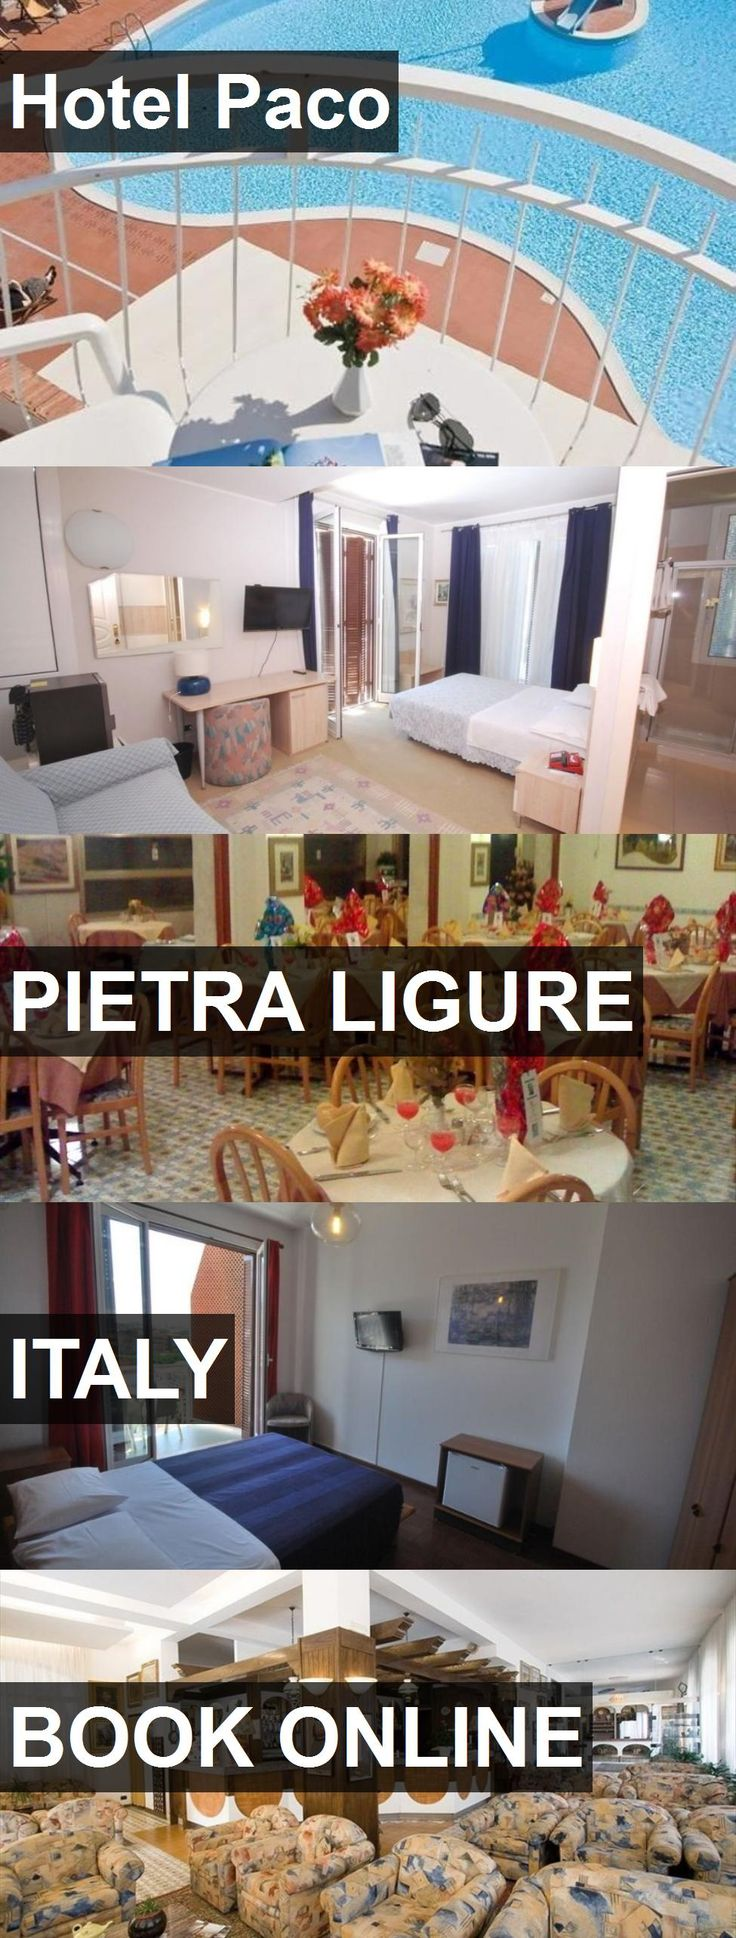 Hotel Hotel Paco in Pietra Ligure, Italy. For more information, photos, reviews and best prices please follow the link. #Italy #PietraLigure #HotelPaco #hotel #travel #vacation